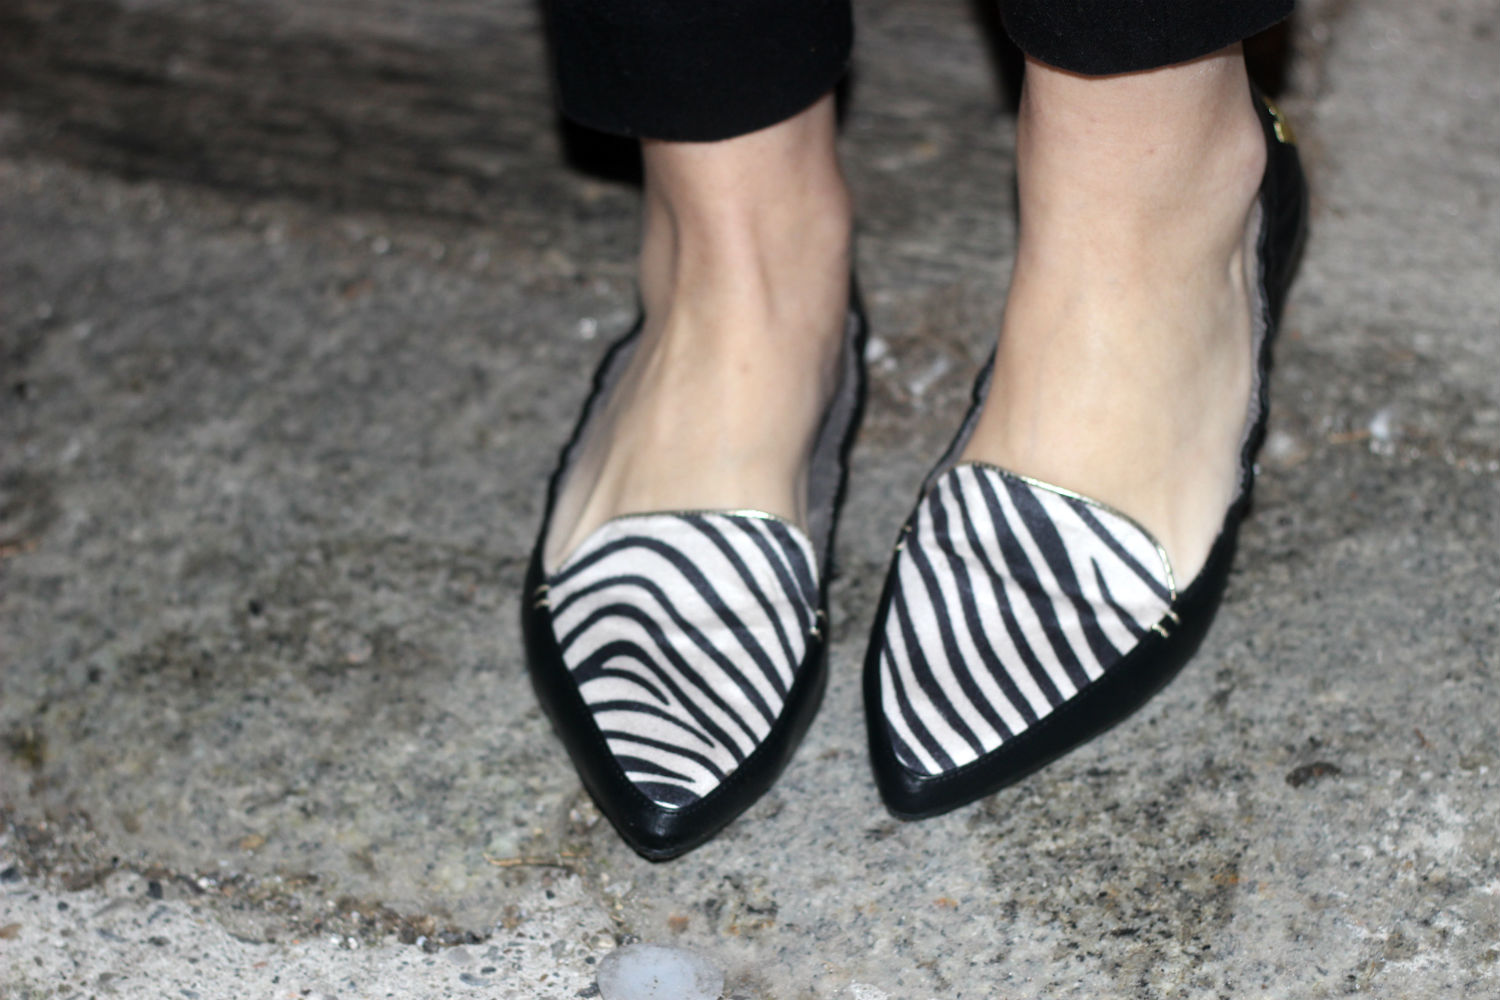 butterfly twists- ballerine pieghevoli - zebra ballerina a punta - fashion blog